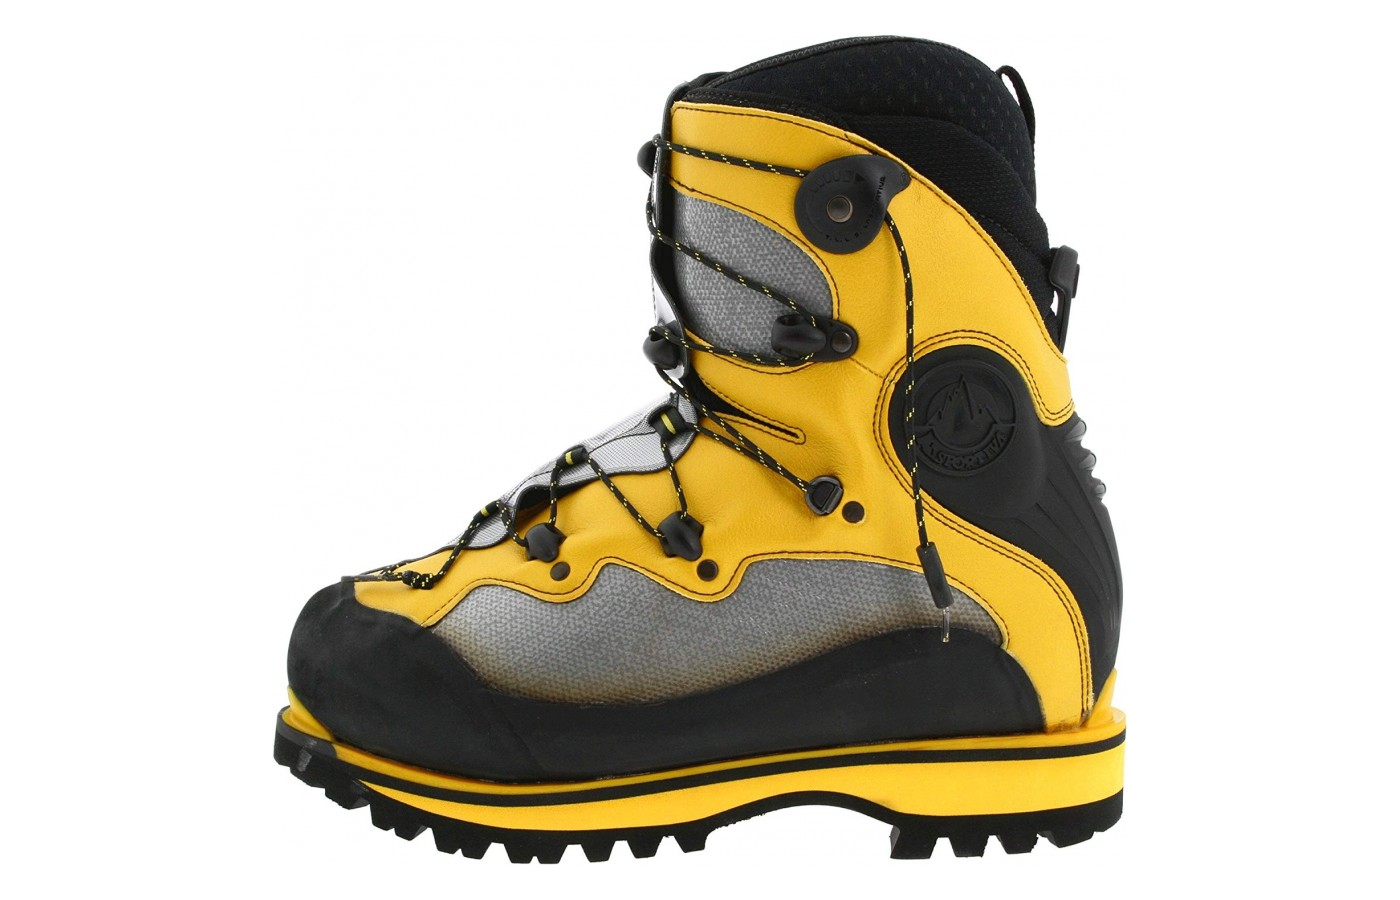 The beefy ankle support of the La Sportiva Spantik